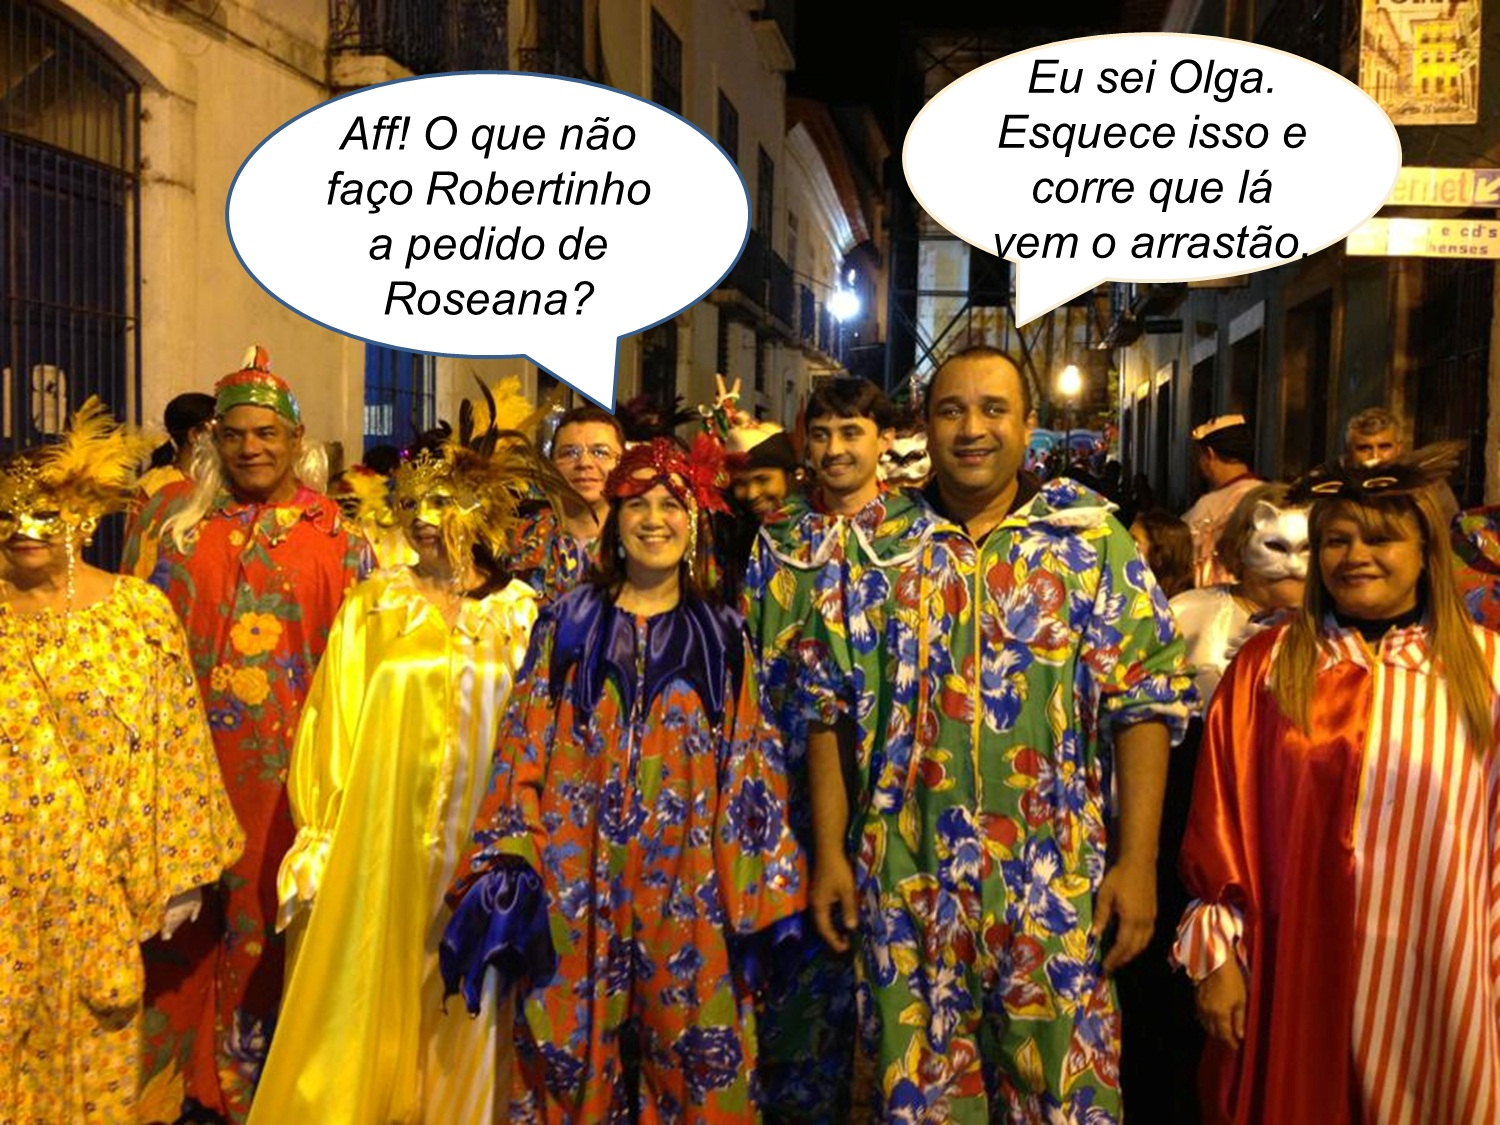 Via blog do Neto Ferreira.